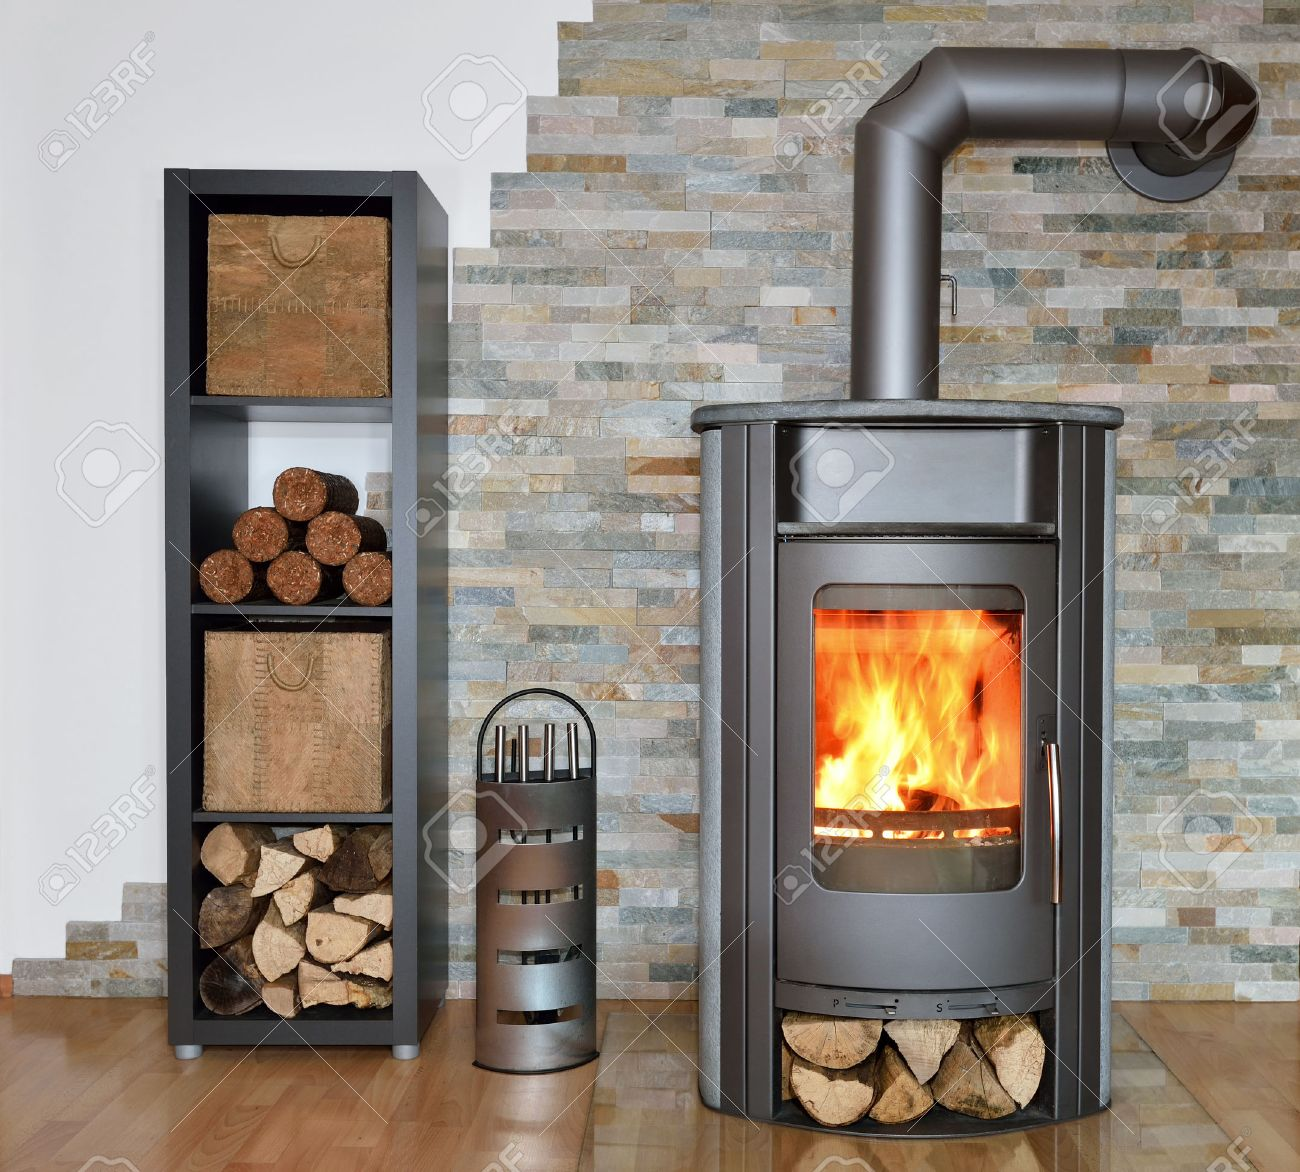 wood fired stove with fire-wood, fire-irons, and briquettes from bark Stock Photo - 24693403